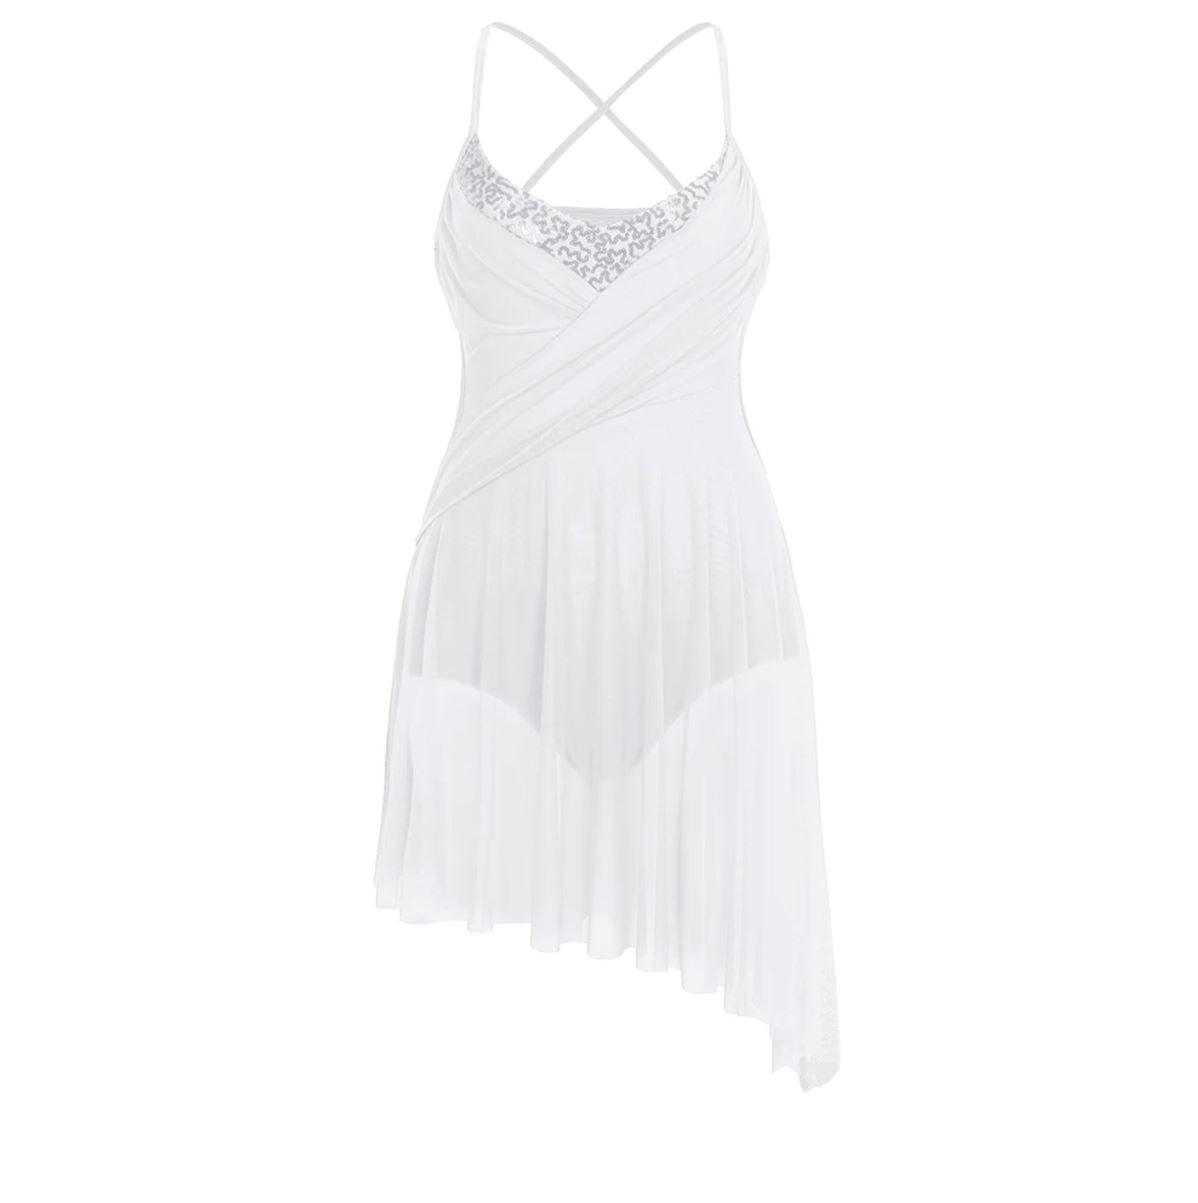 White in colour, leotard dress with side hollow out, side cut out, spaghetti shoulder straps. Pas de bourree dancewear. Pasdebourreedancewear.